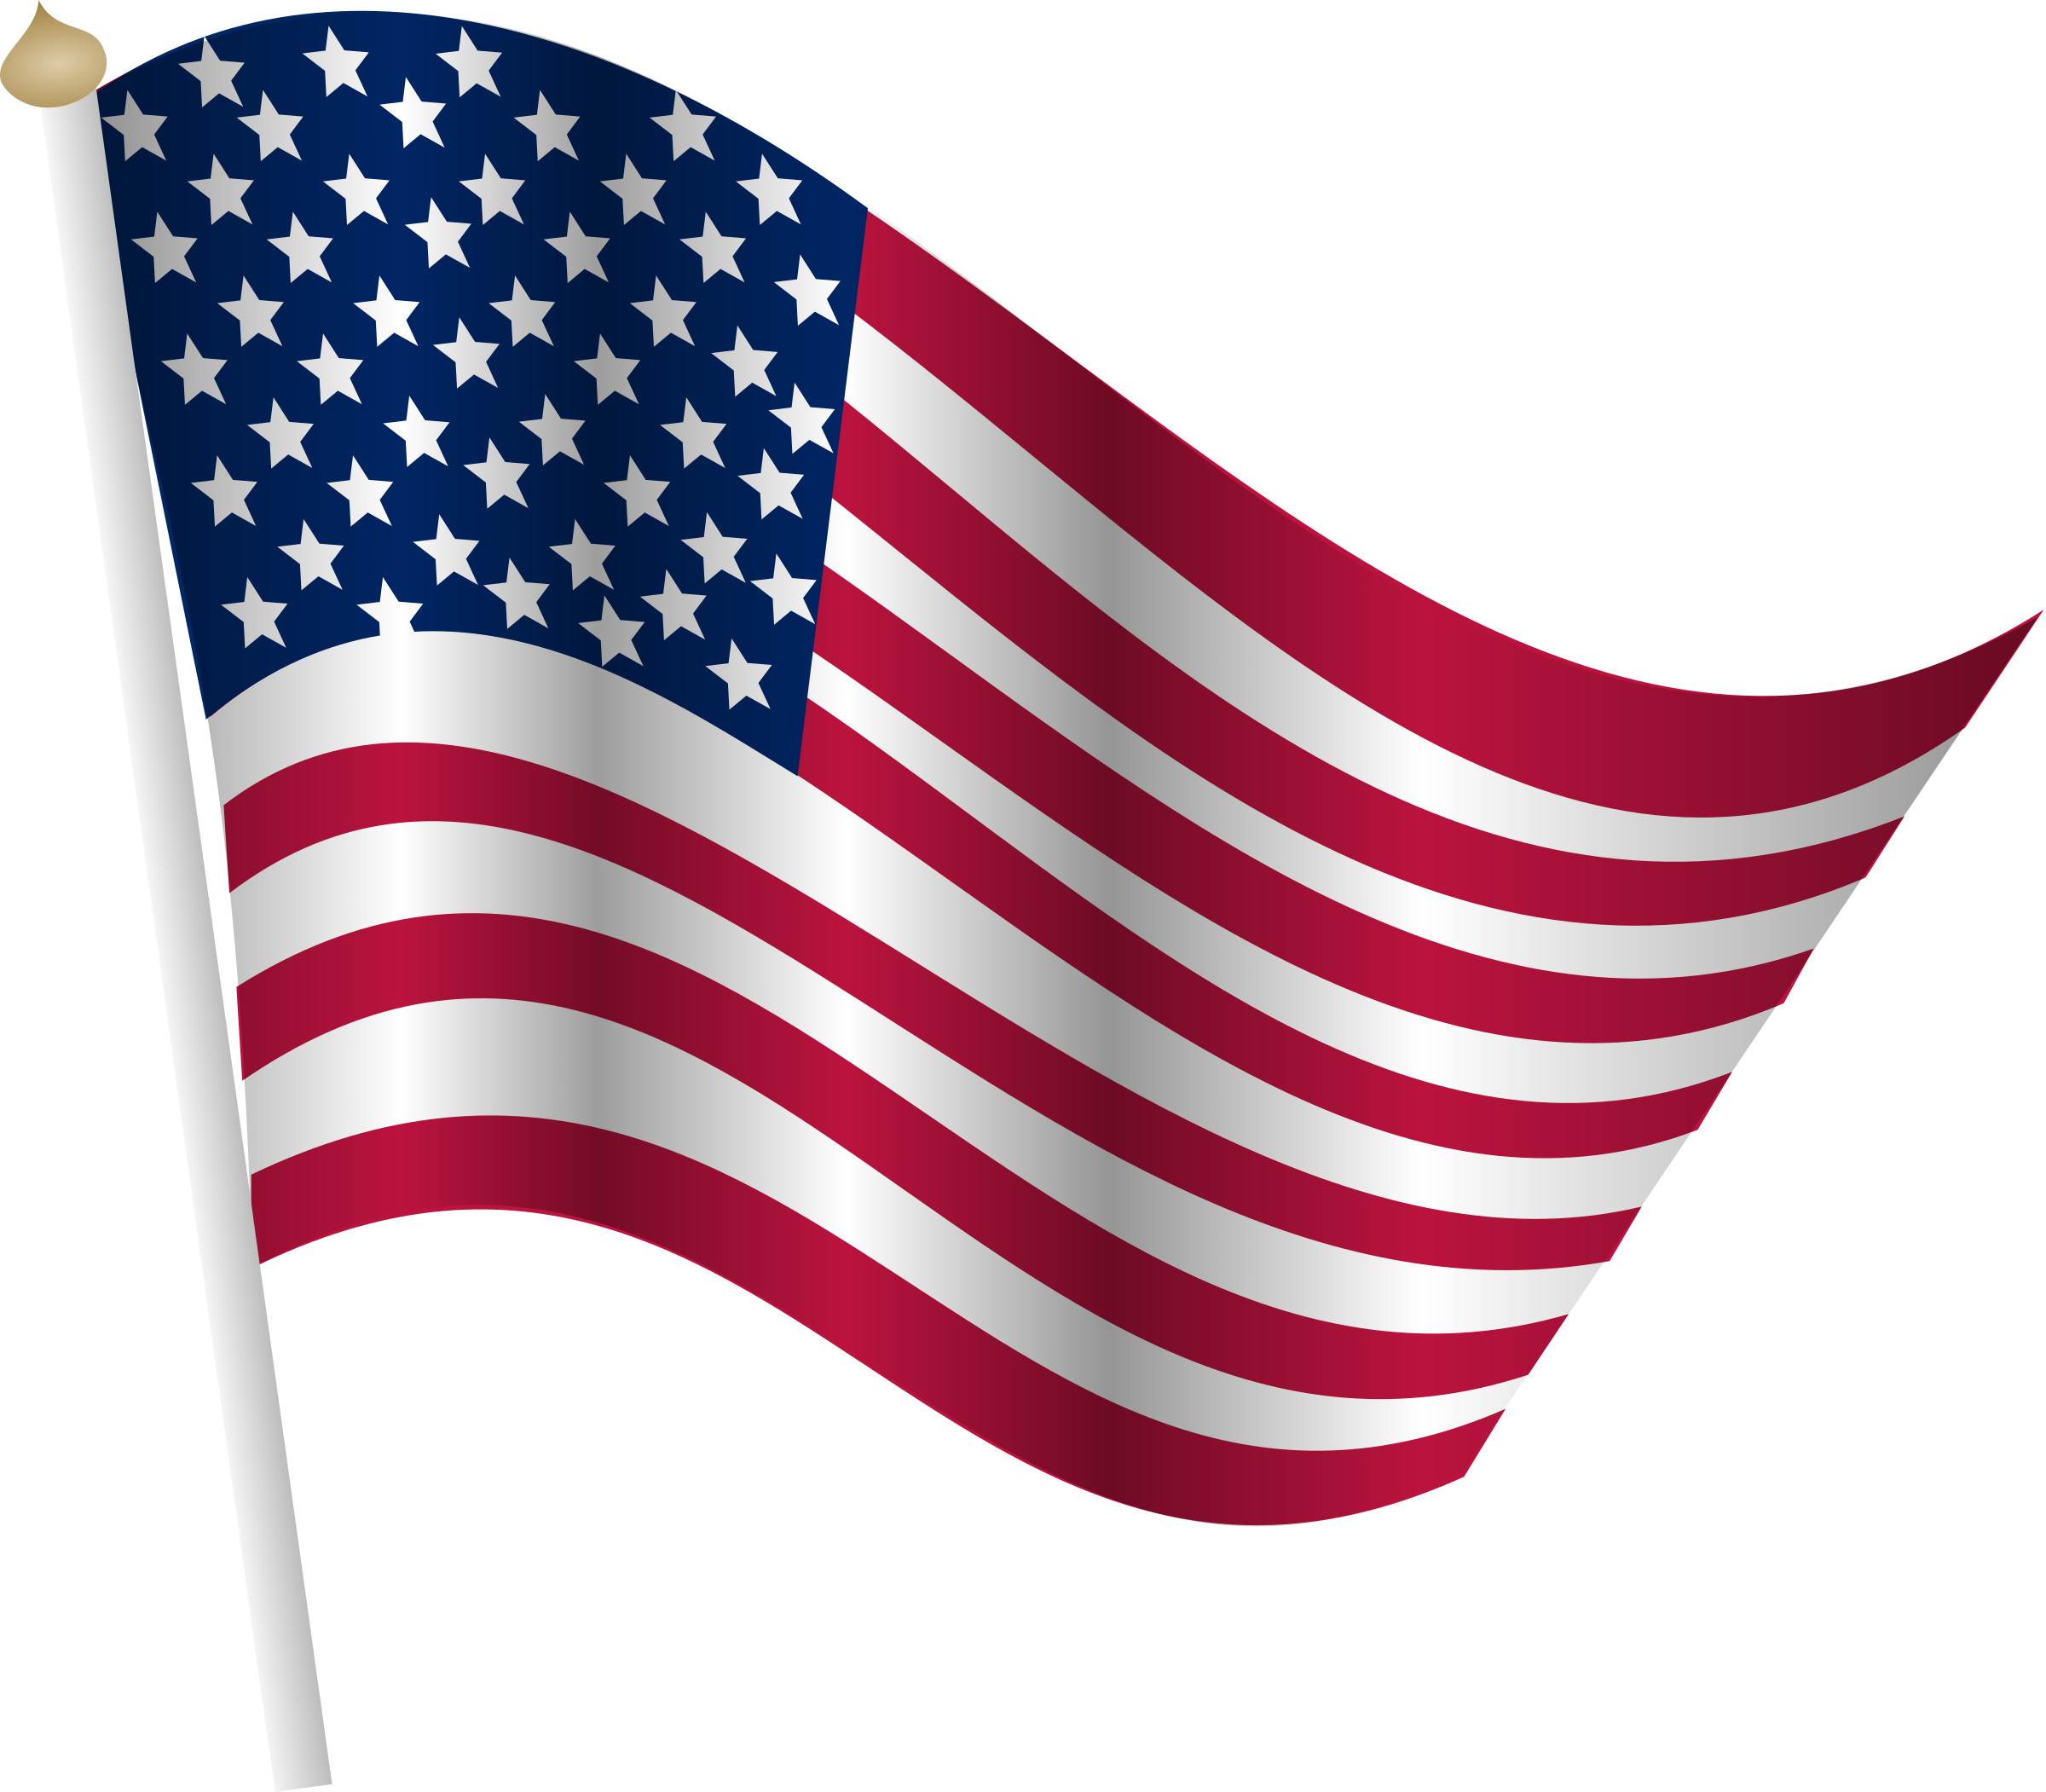 American flag by rdevries